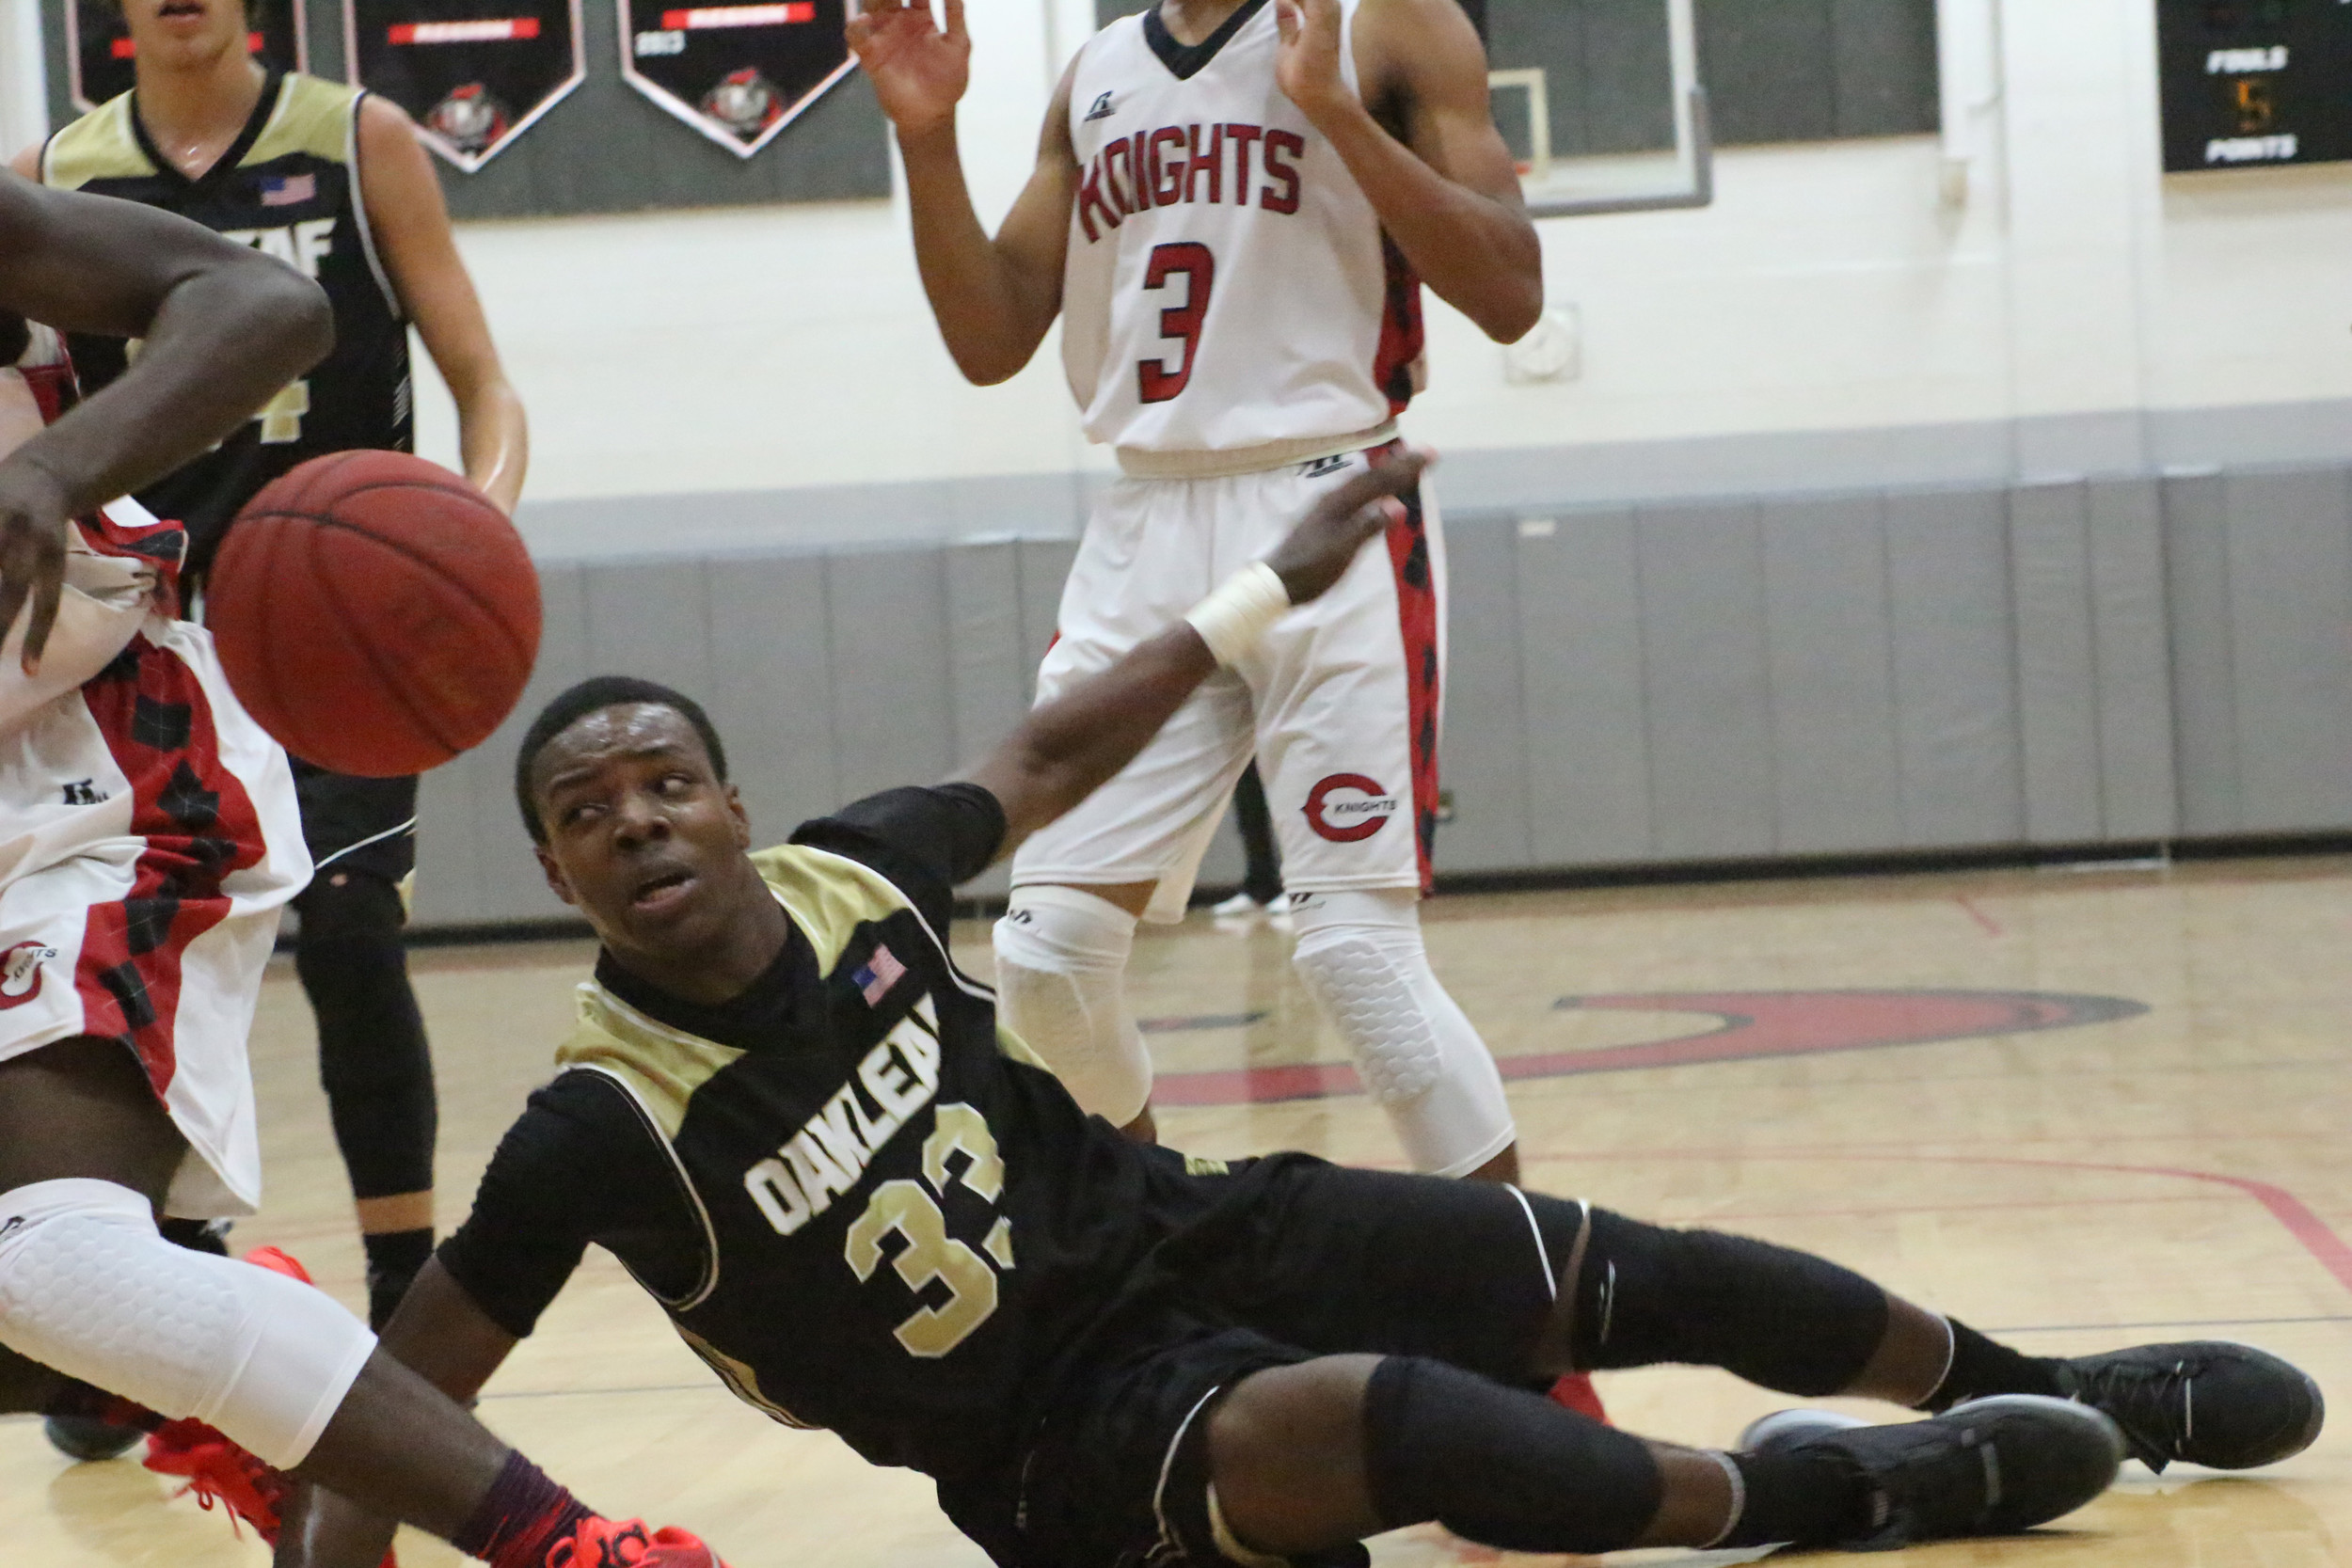 Oakleaf High top scorer Jonathan Bryant got bumped and battered every time he drove through the lane as Creekside bottled up the  middle in their 4-7A win.